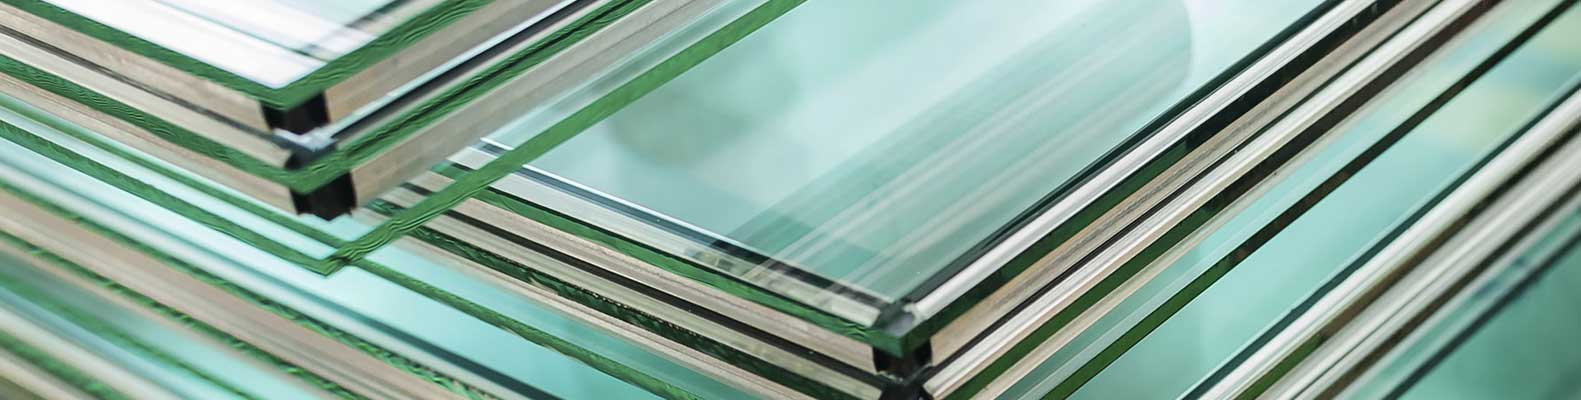 glass delivery header image